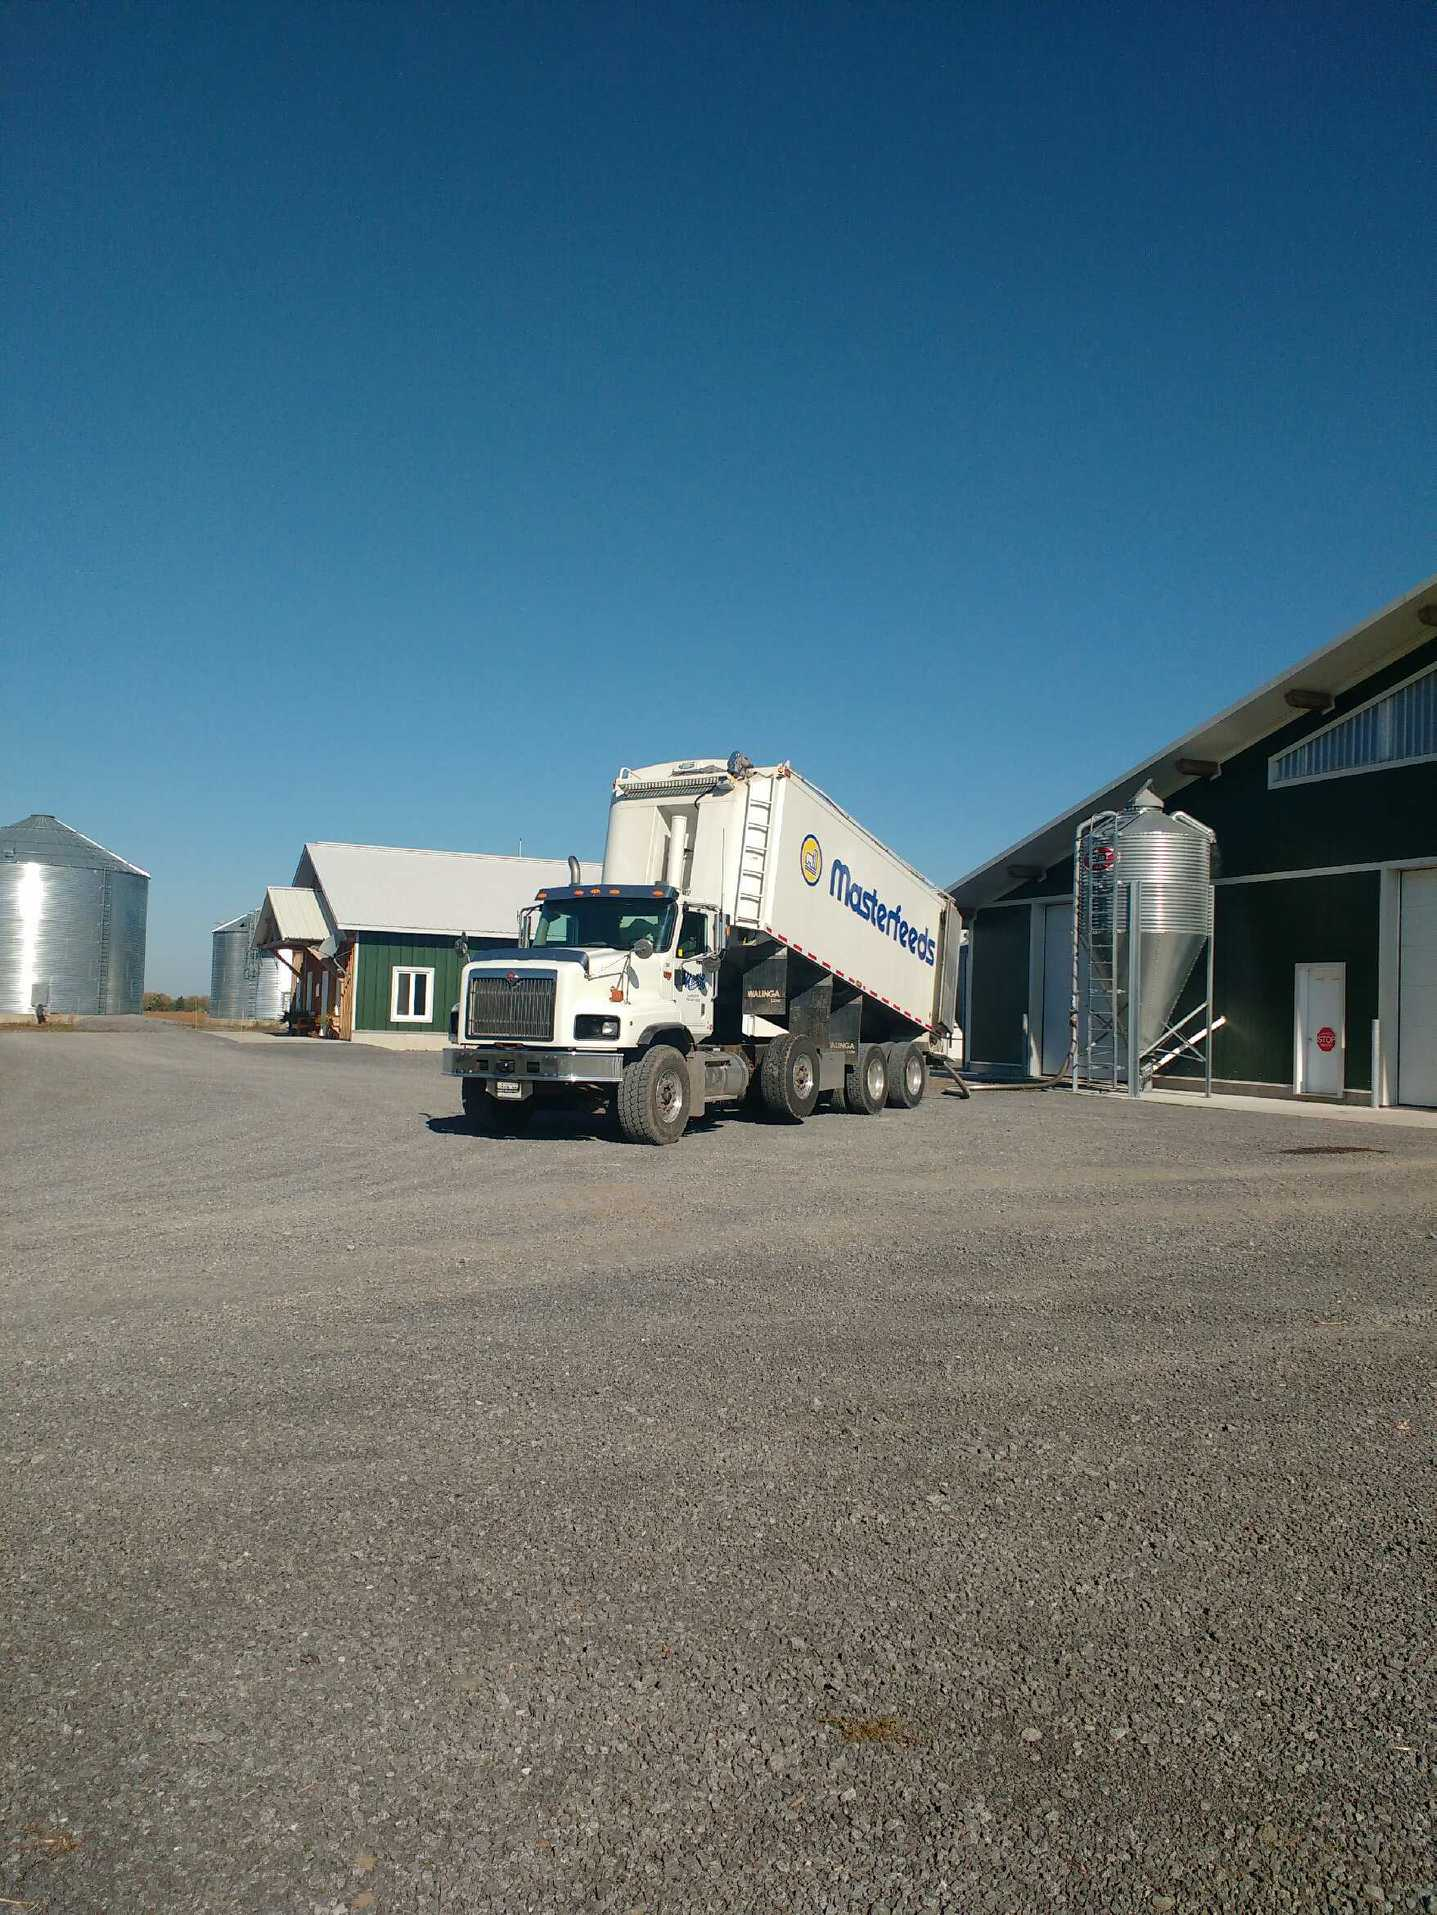 Delivering bulk feed at Kenmatten Dairy.